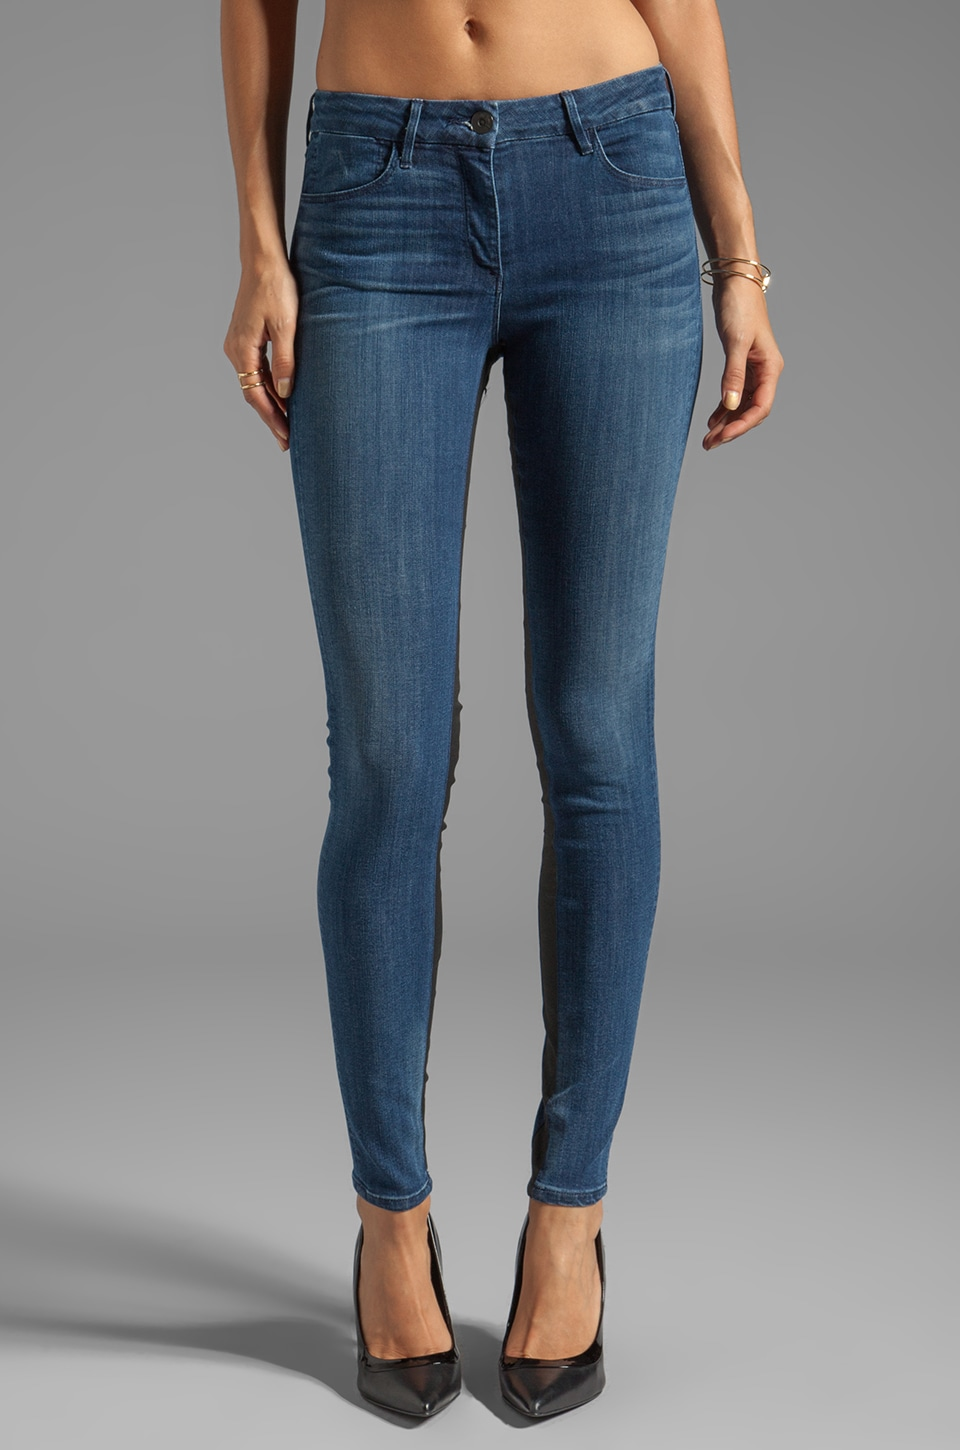 3x1 Mid Rise Channel Skinny in Indigo